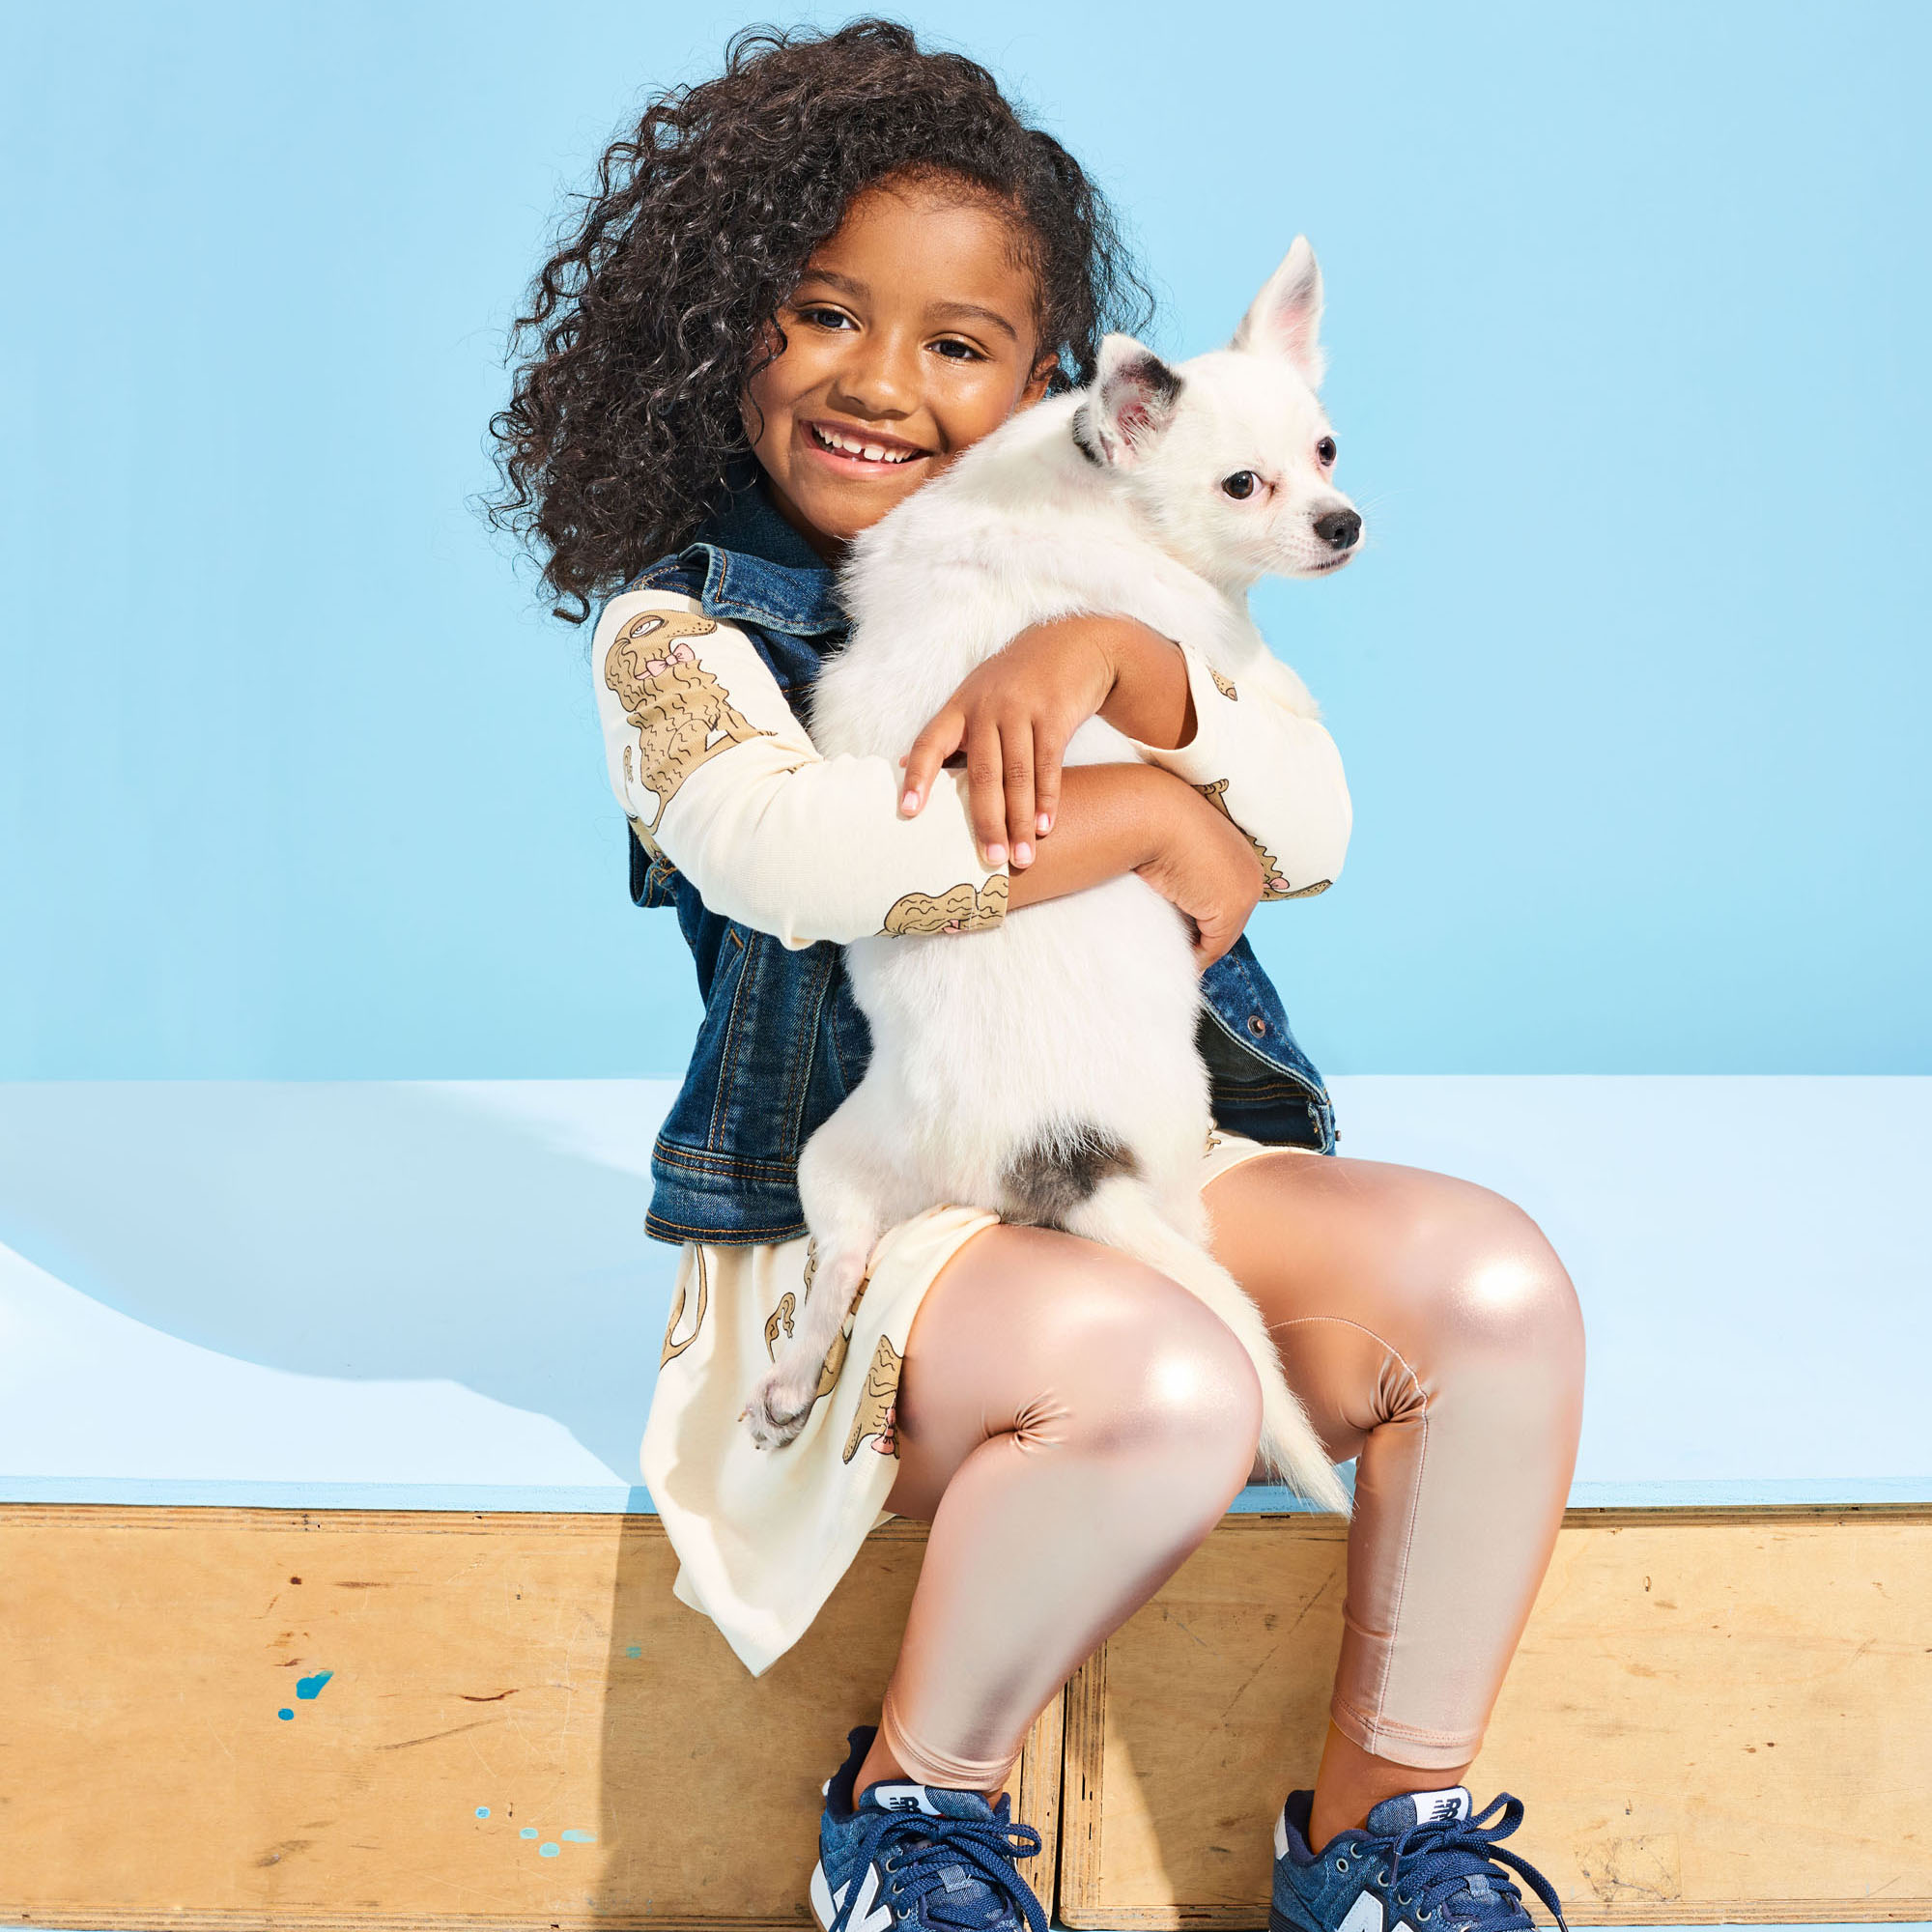 21 Cute Kids and Their Pets